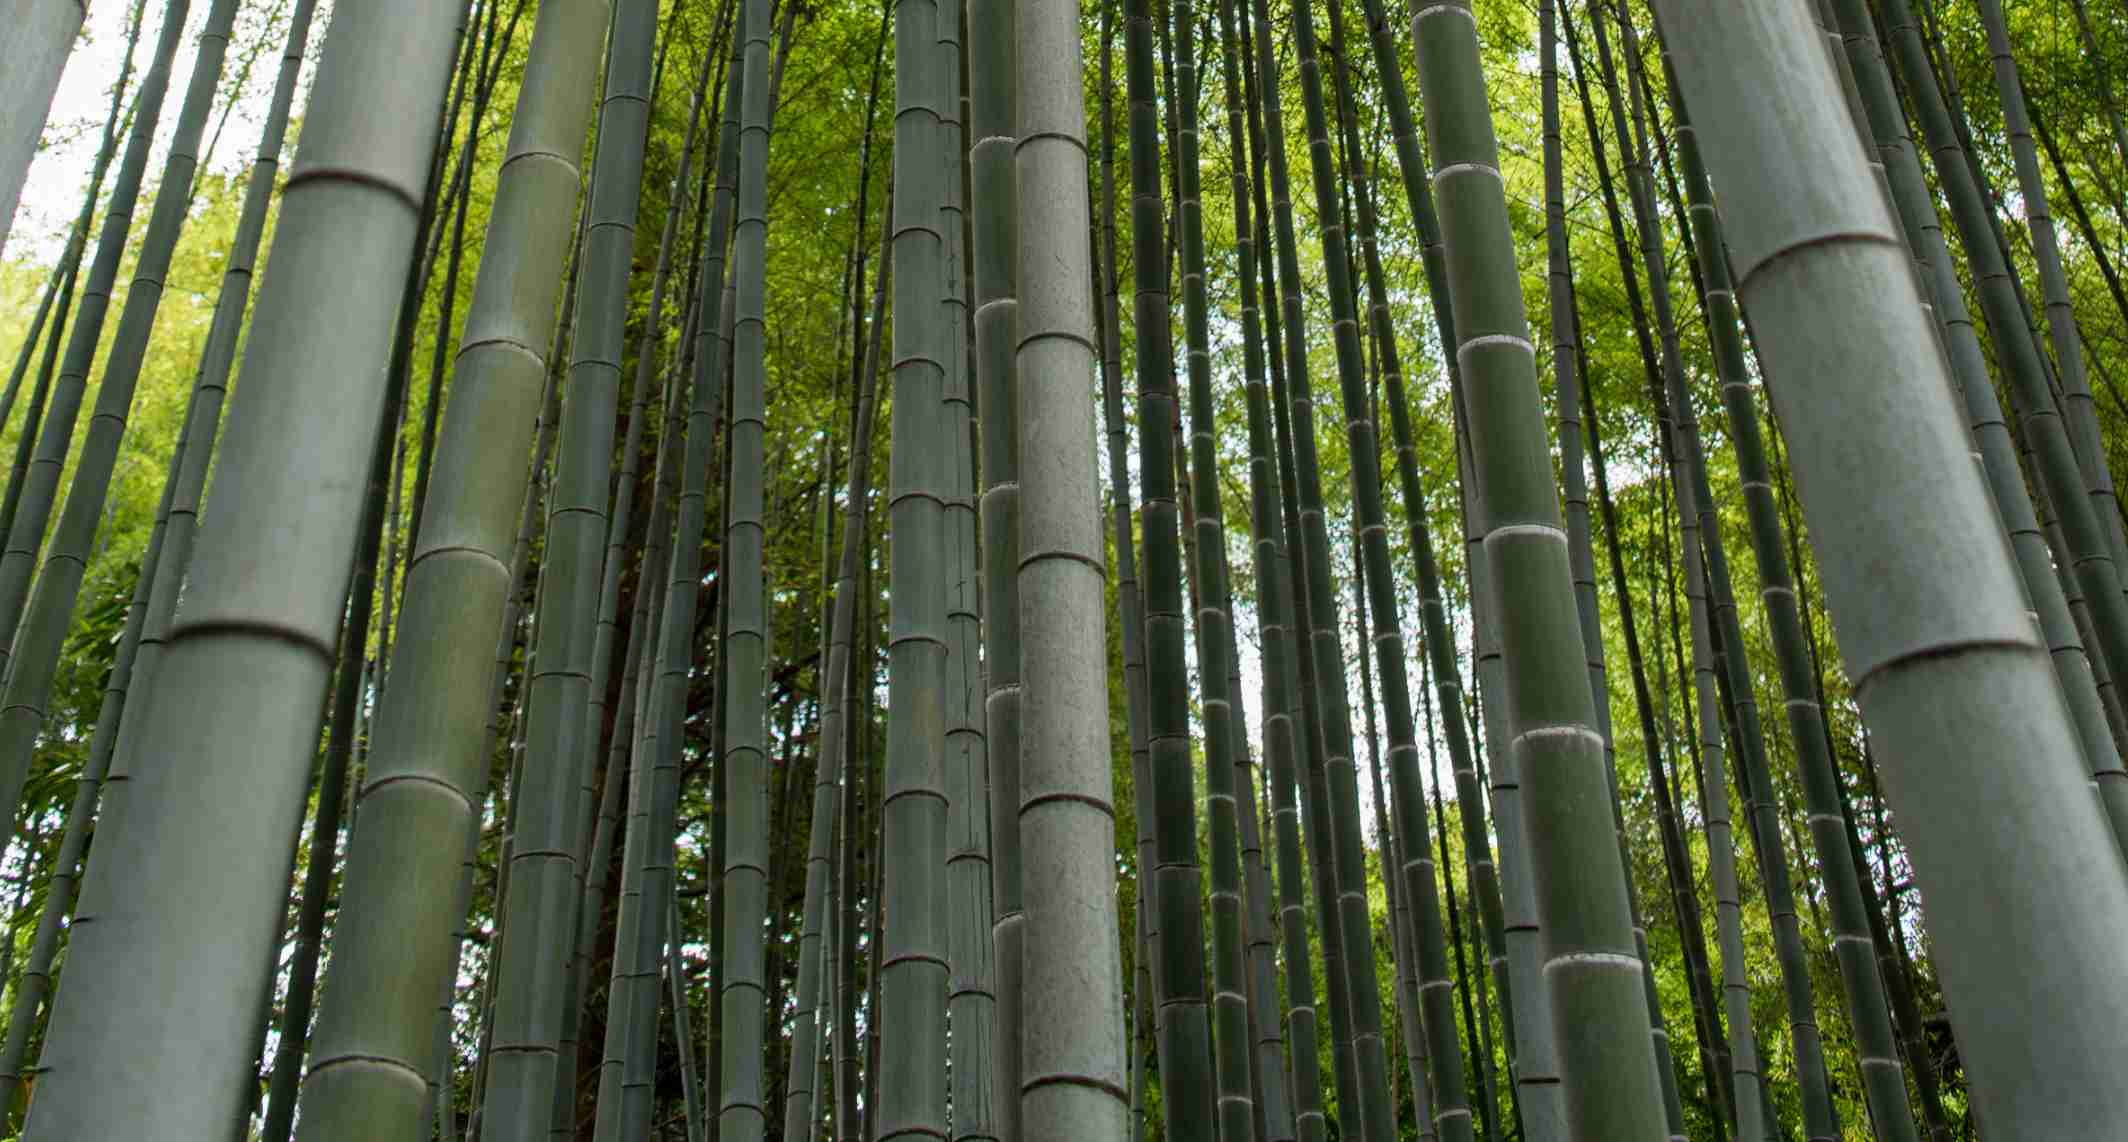 The Best Varieties of Bamboo for Building and Construction